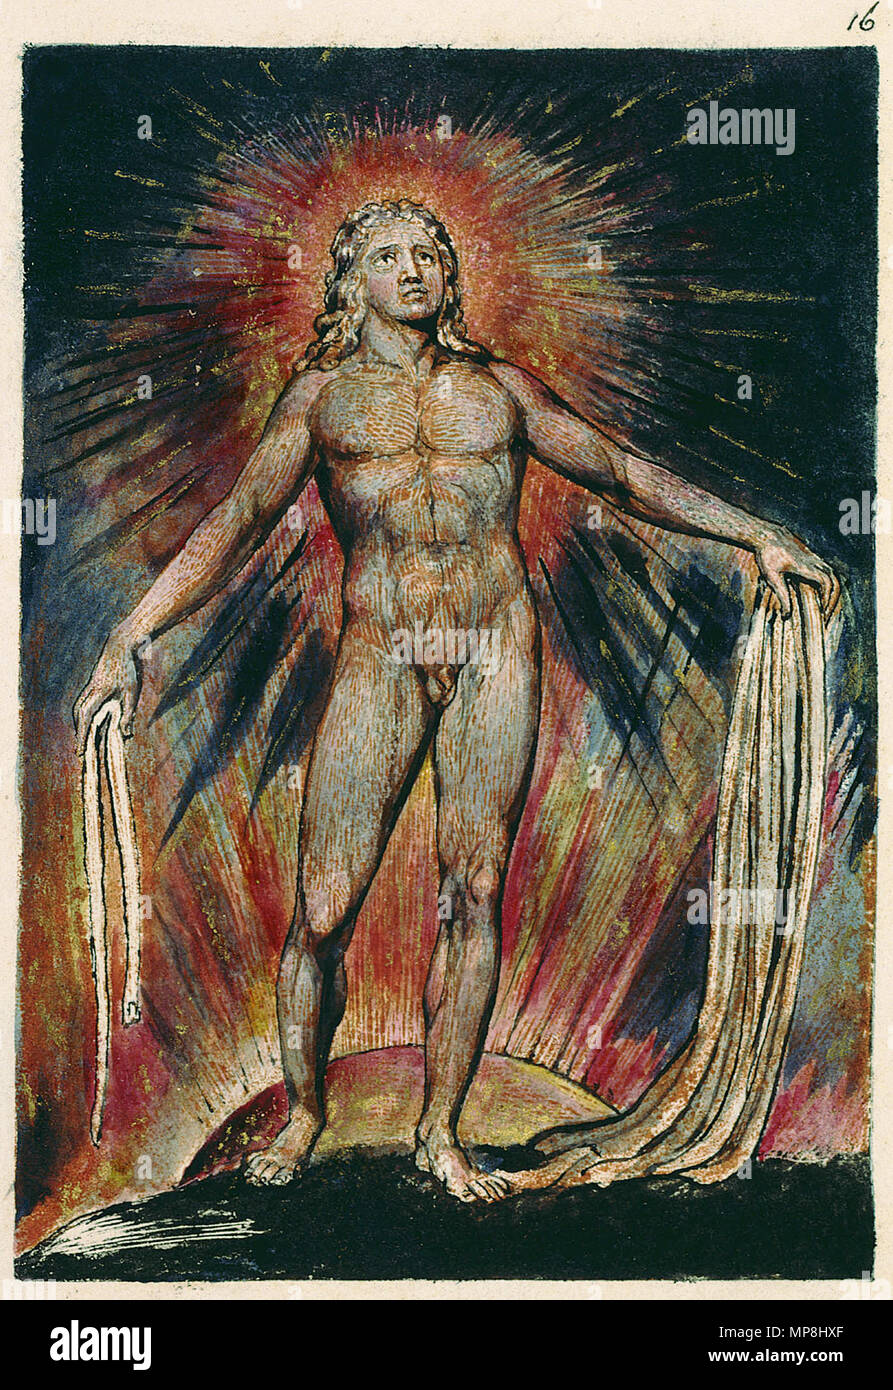 . English: Milton a Poem, copy D, object 16 Bentley 13, Erdman not numbered, Keynes 13 . 26 March 2007, 09:00:50.   William Blake (1757–1827)   Alternative names W. Blake; Uil'iam Bleik  Description British painter, poet, writer, theologian, collector and engraver  Date of birth/death 28 November 1757 12 August 1827  Location of birth/death Broadwick Street Charing Cross  Work location London  Authority control  : Q41513 VIAF:54144439 ISNI:0000 0001 2096 135X ULAN:500012489 LCCN:n78095331 NLA:35019221 WorldCat 895 Milton a Poem, copy D, object 16 Bentley 13, Erdman not numbered, Keyn - Stock Image